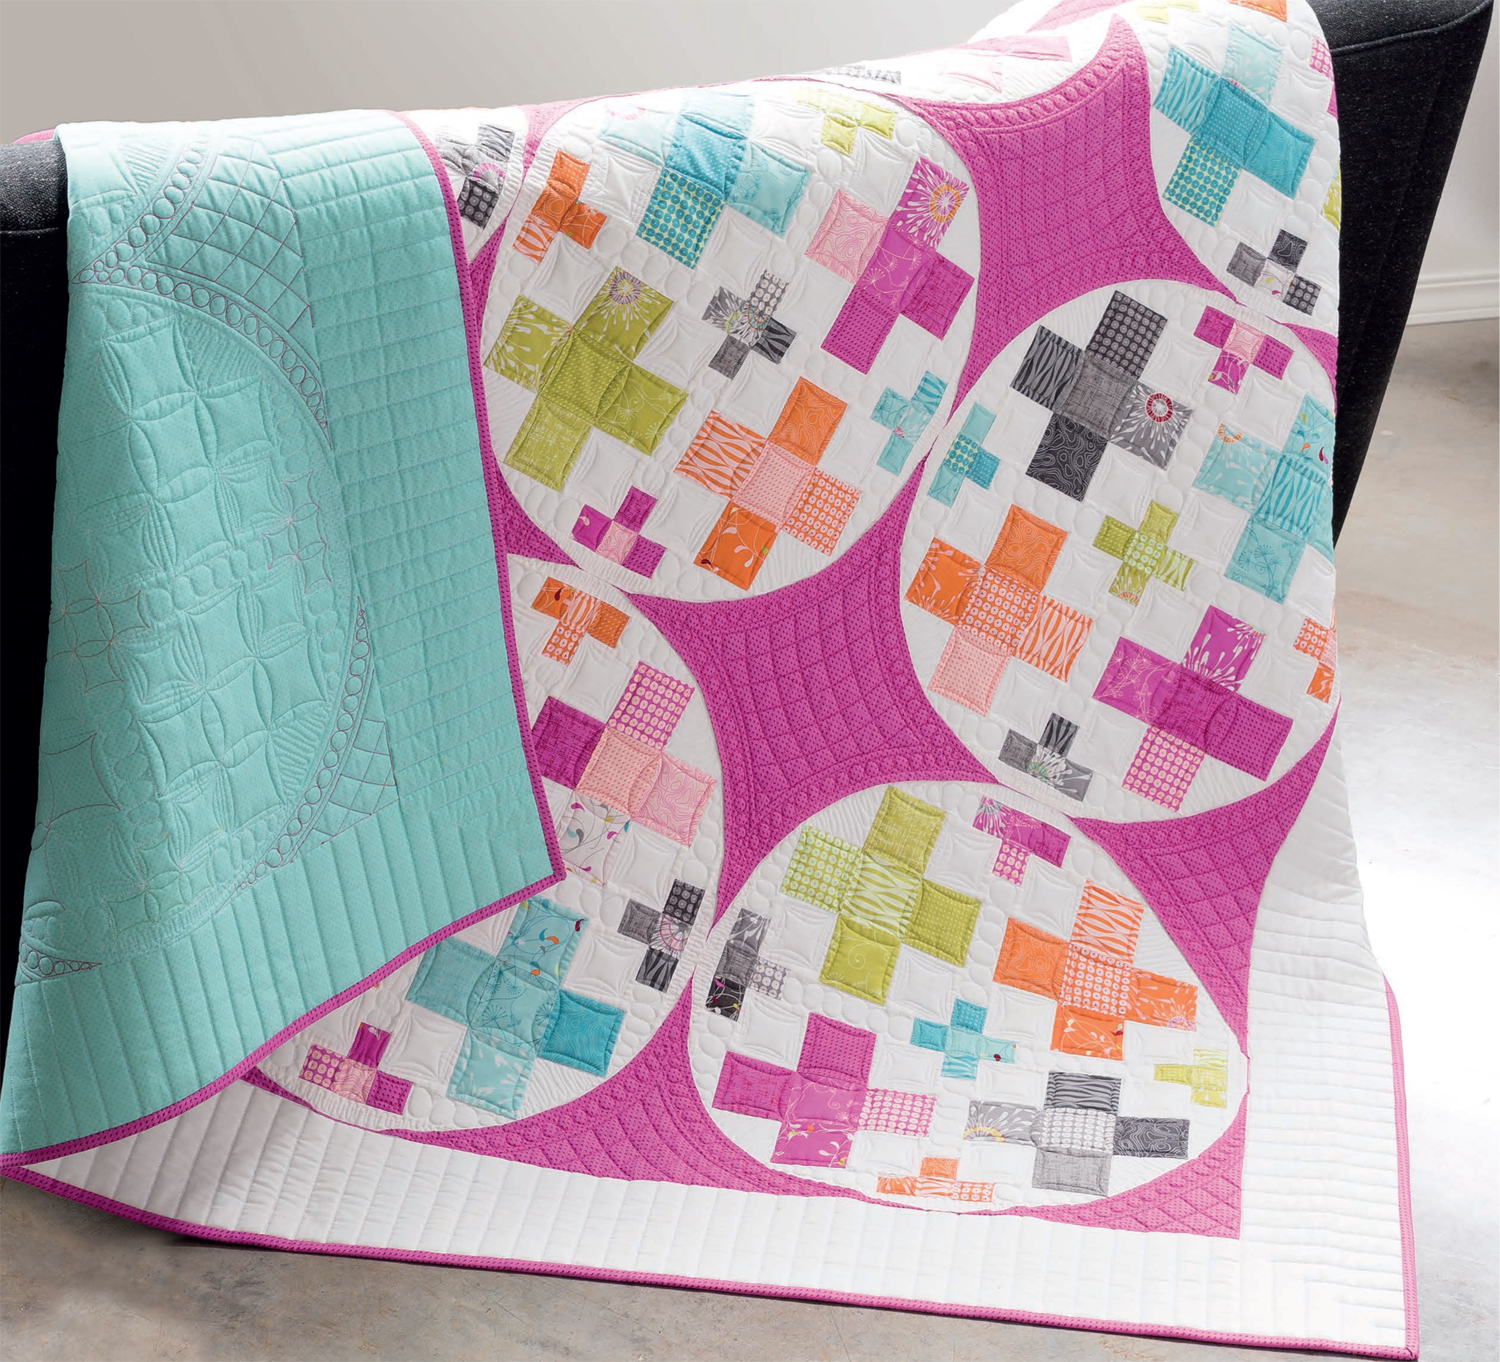 Square Peg in a Round Hole Layer Cake quilt